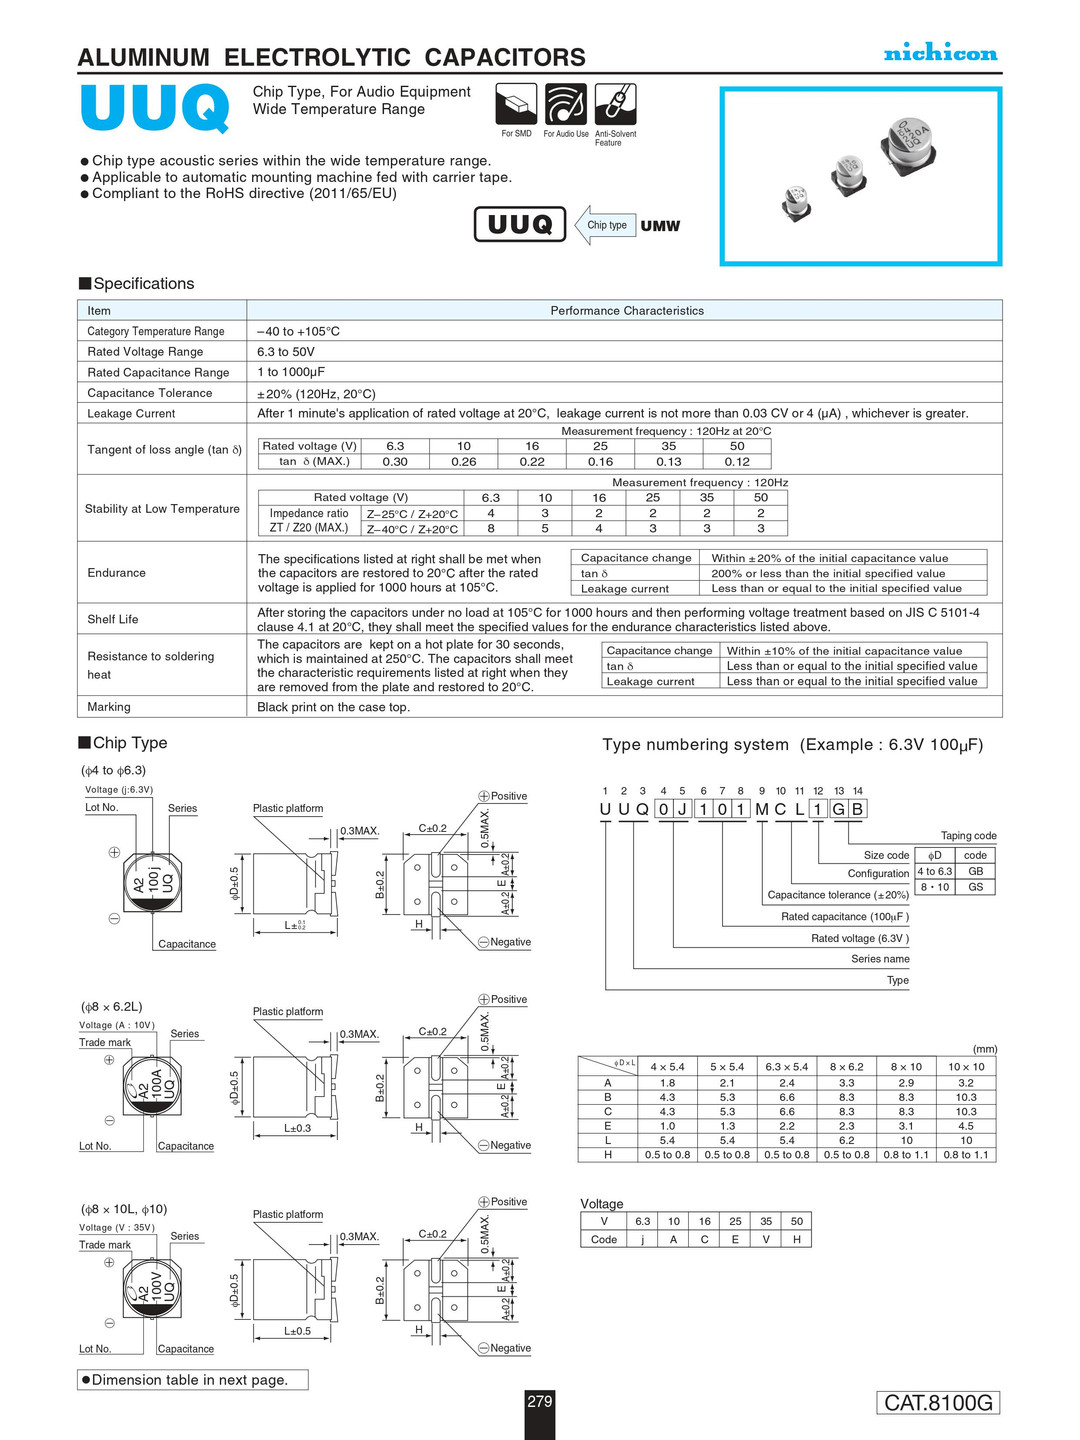 Nichicon UUQ Series Capacitor Data Sheet